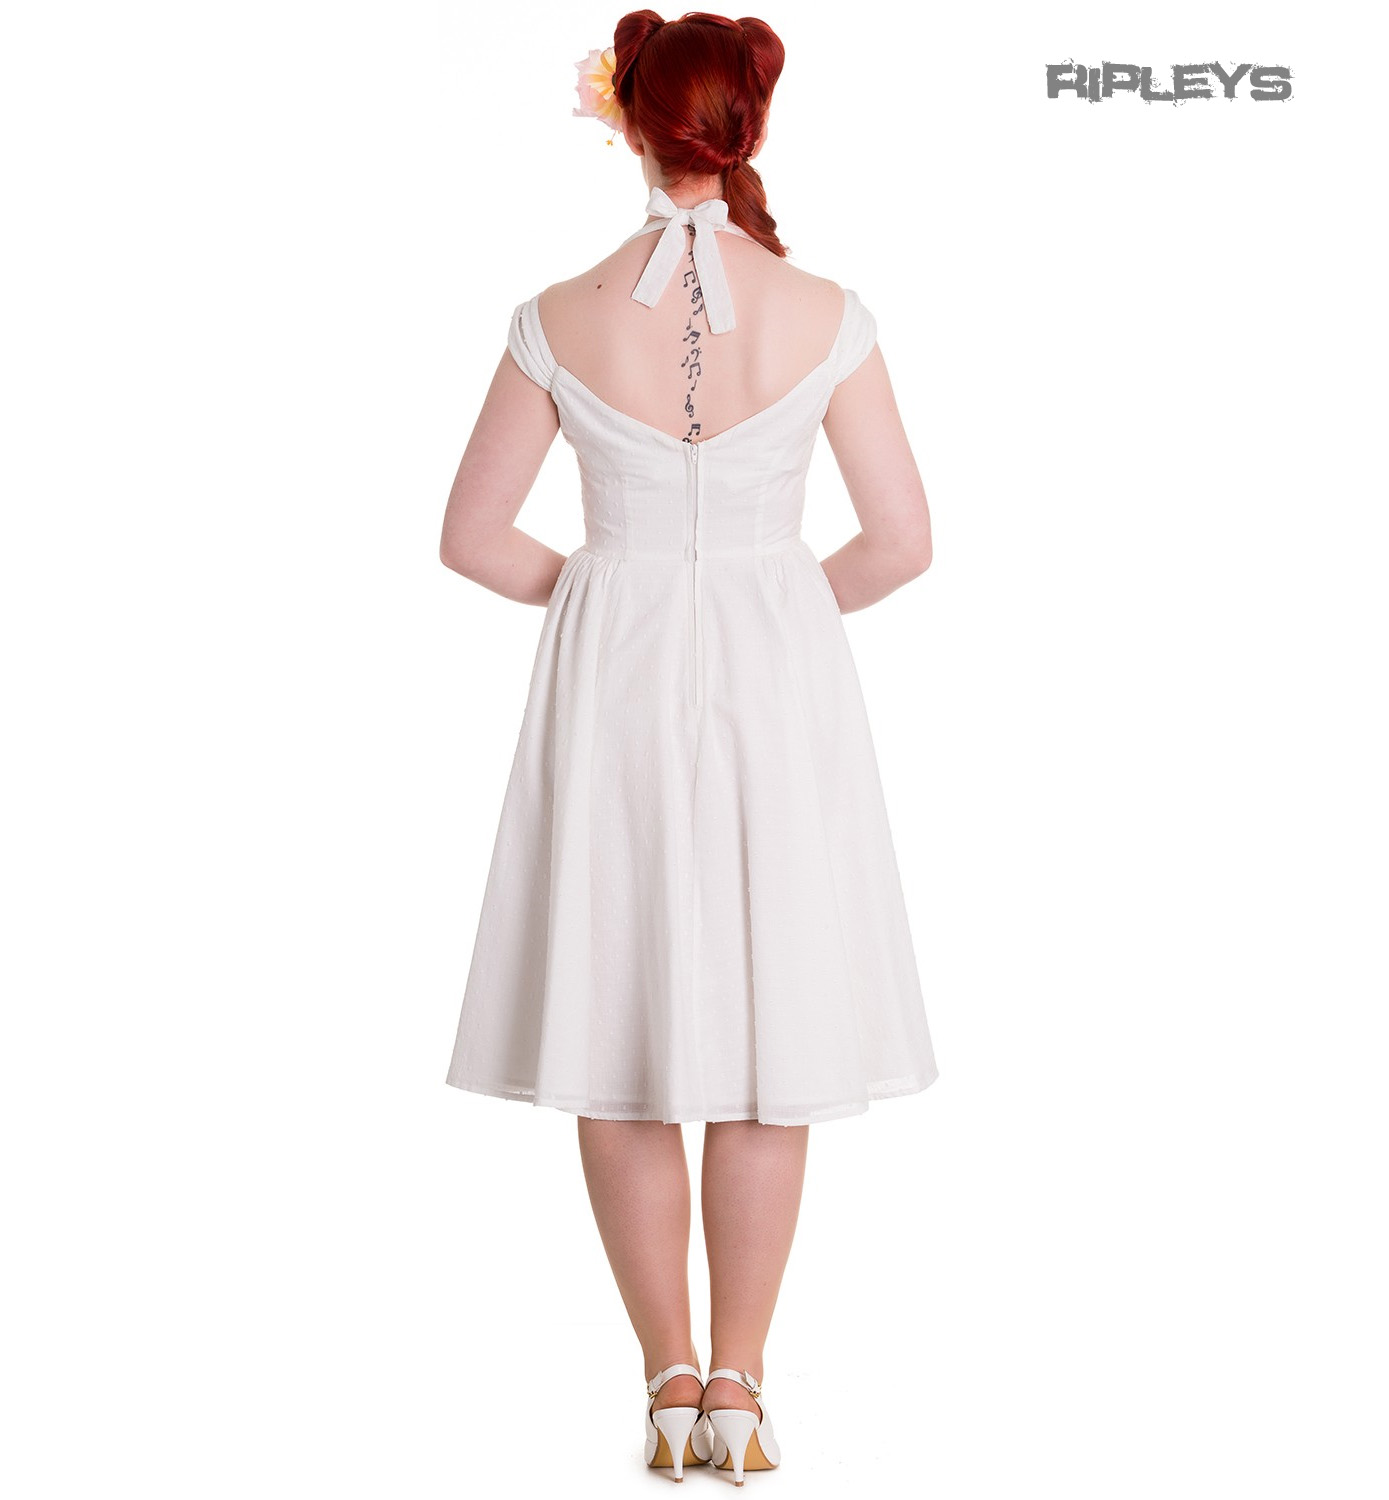 Hell-Bunny-Pin-Up-Party-50s-Dress-Vintage-Rockabilly-EVELINE-White-All-Sizes thumbnail 10